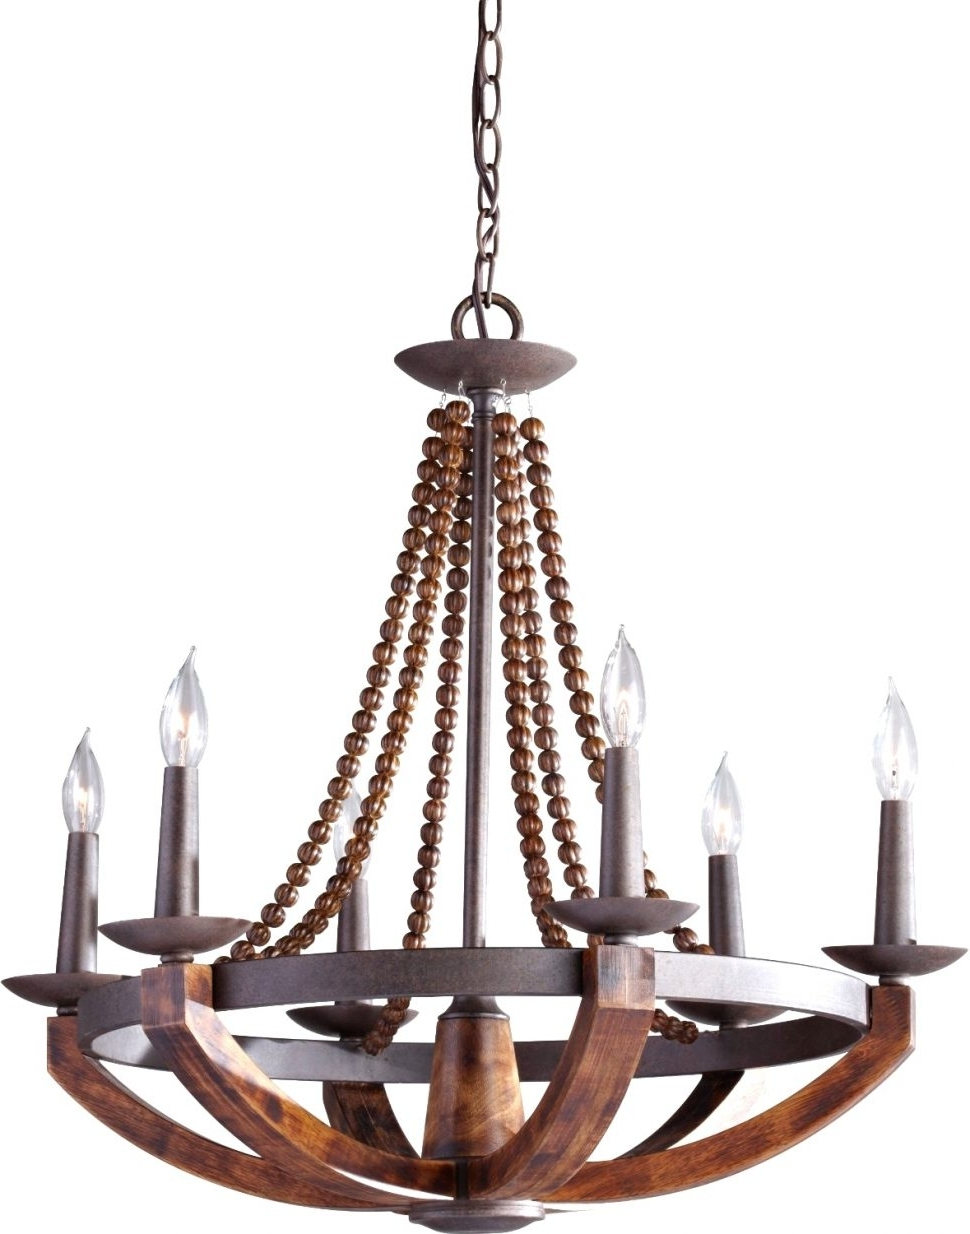 Light : Large Rustic Chandelier Lighting With Best Wood And Metal With Regard To Most Recently Released Metal Chandeliers (View 9 of 20)